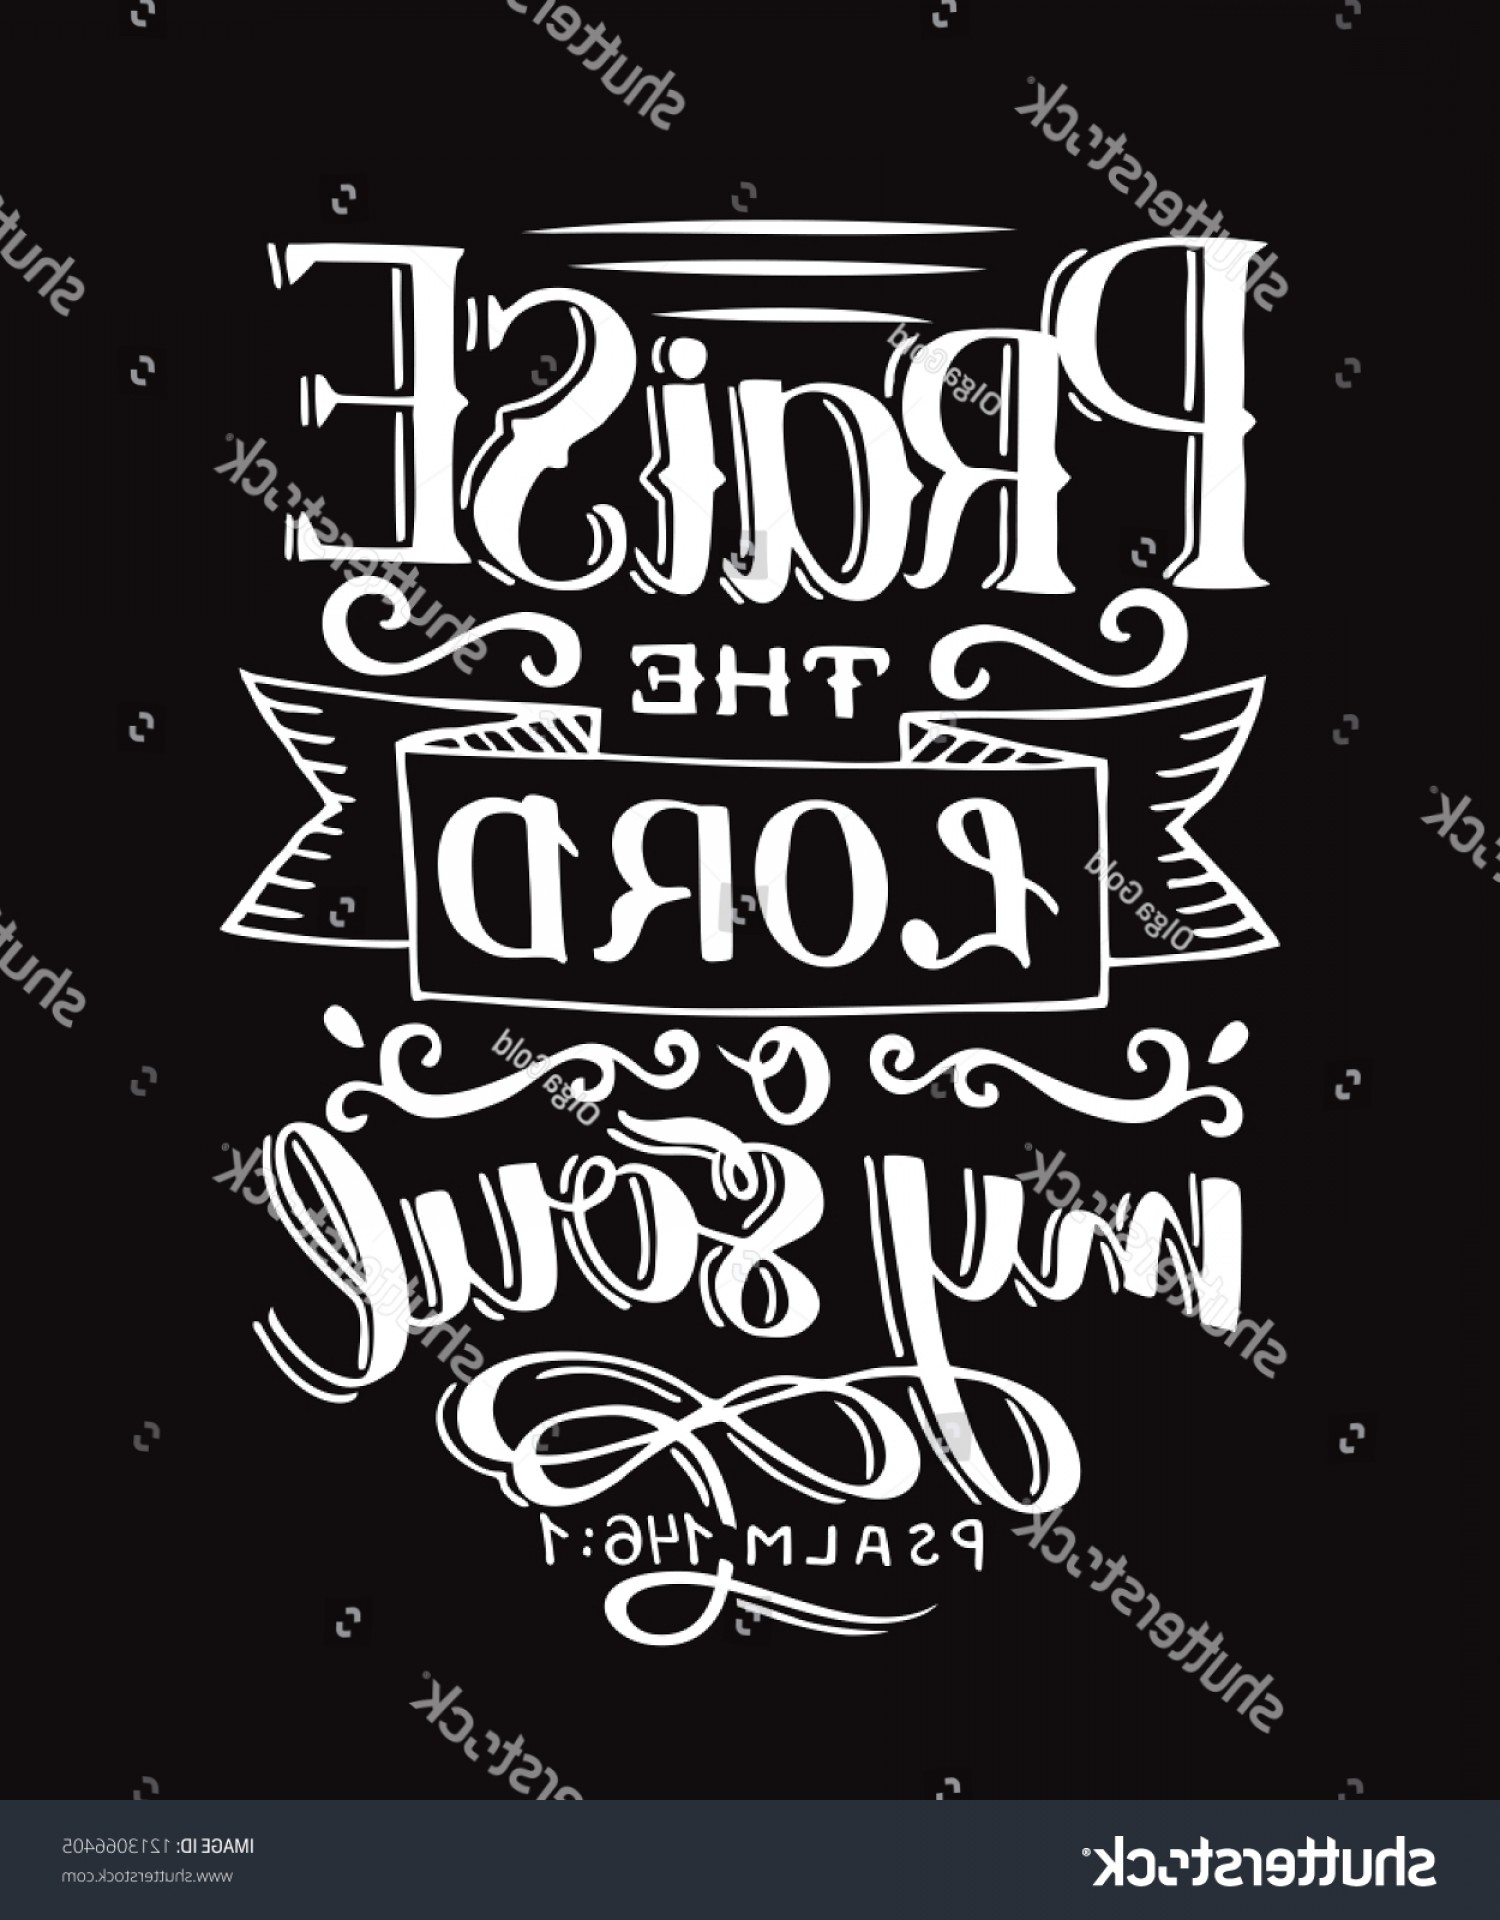 Then Sings My Vector: Hand Lettering Praise Lord O My